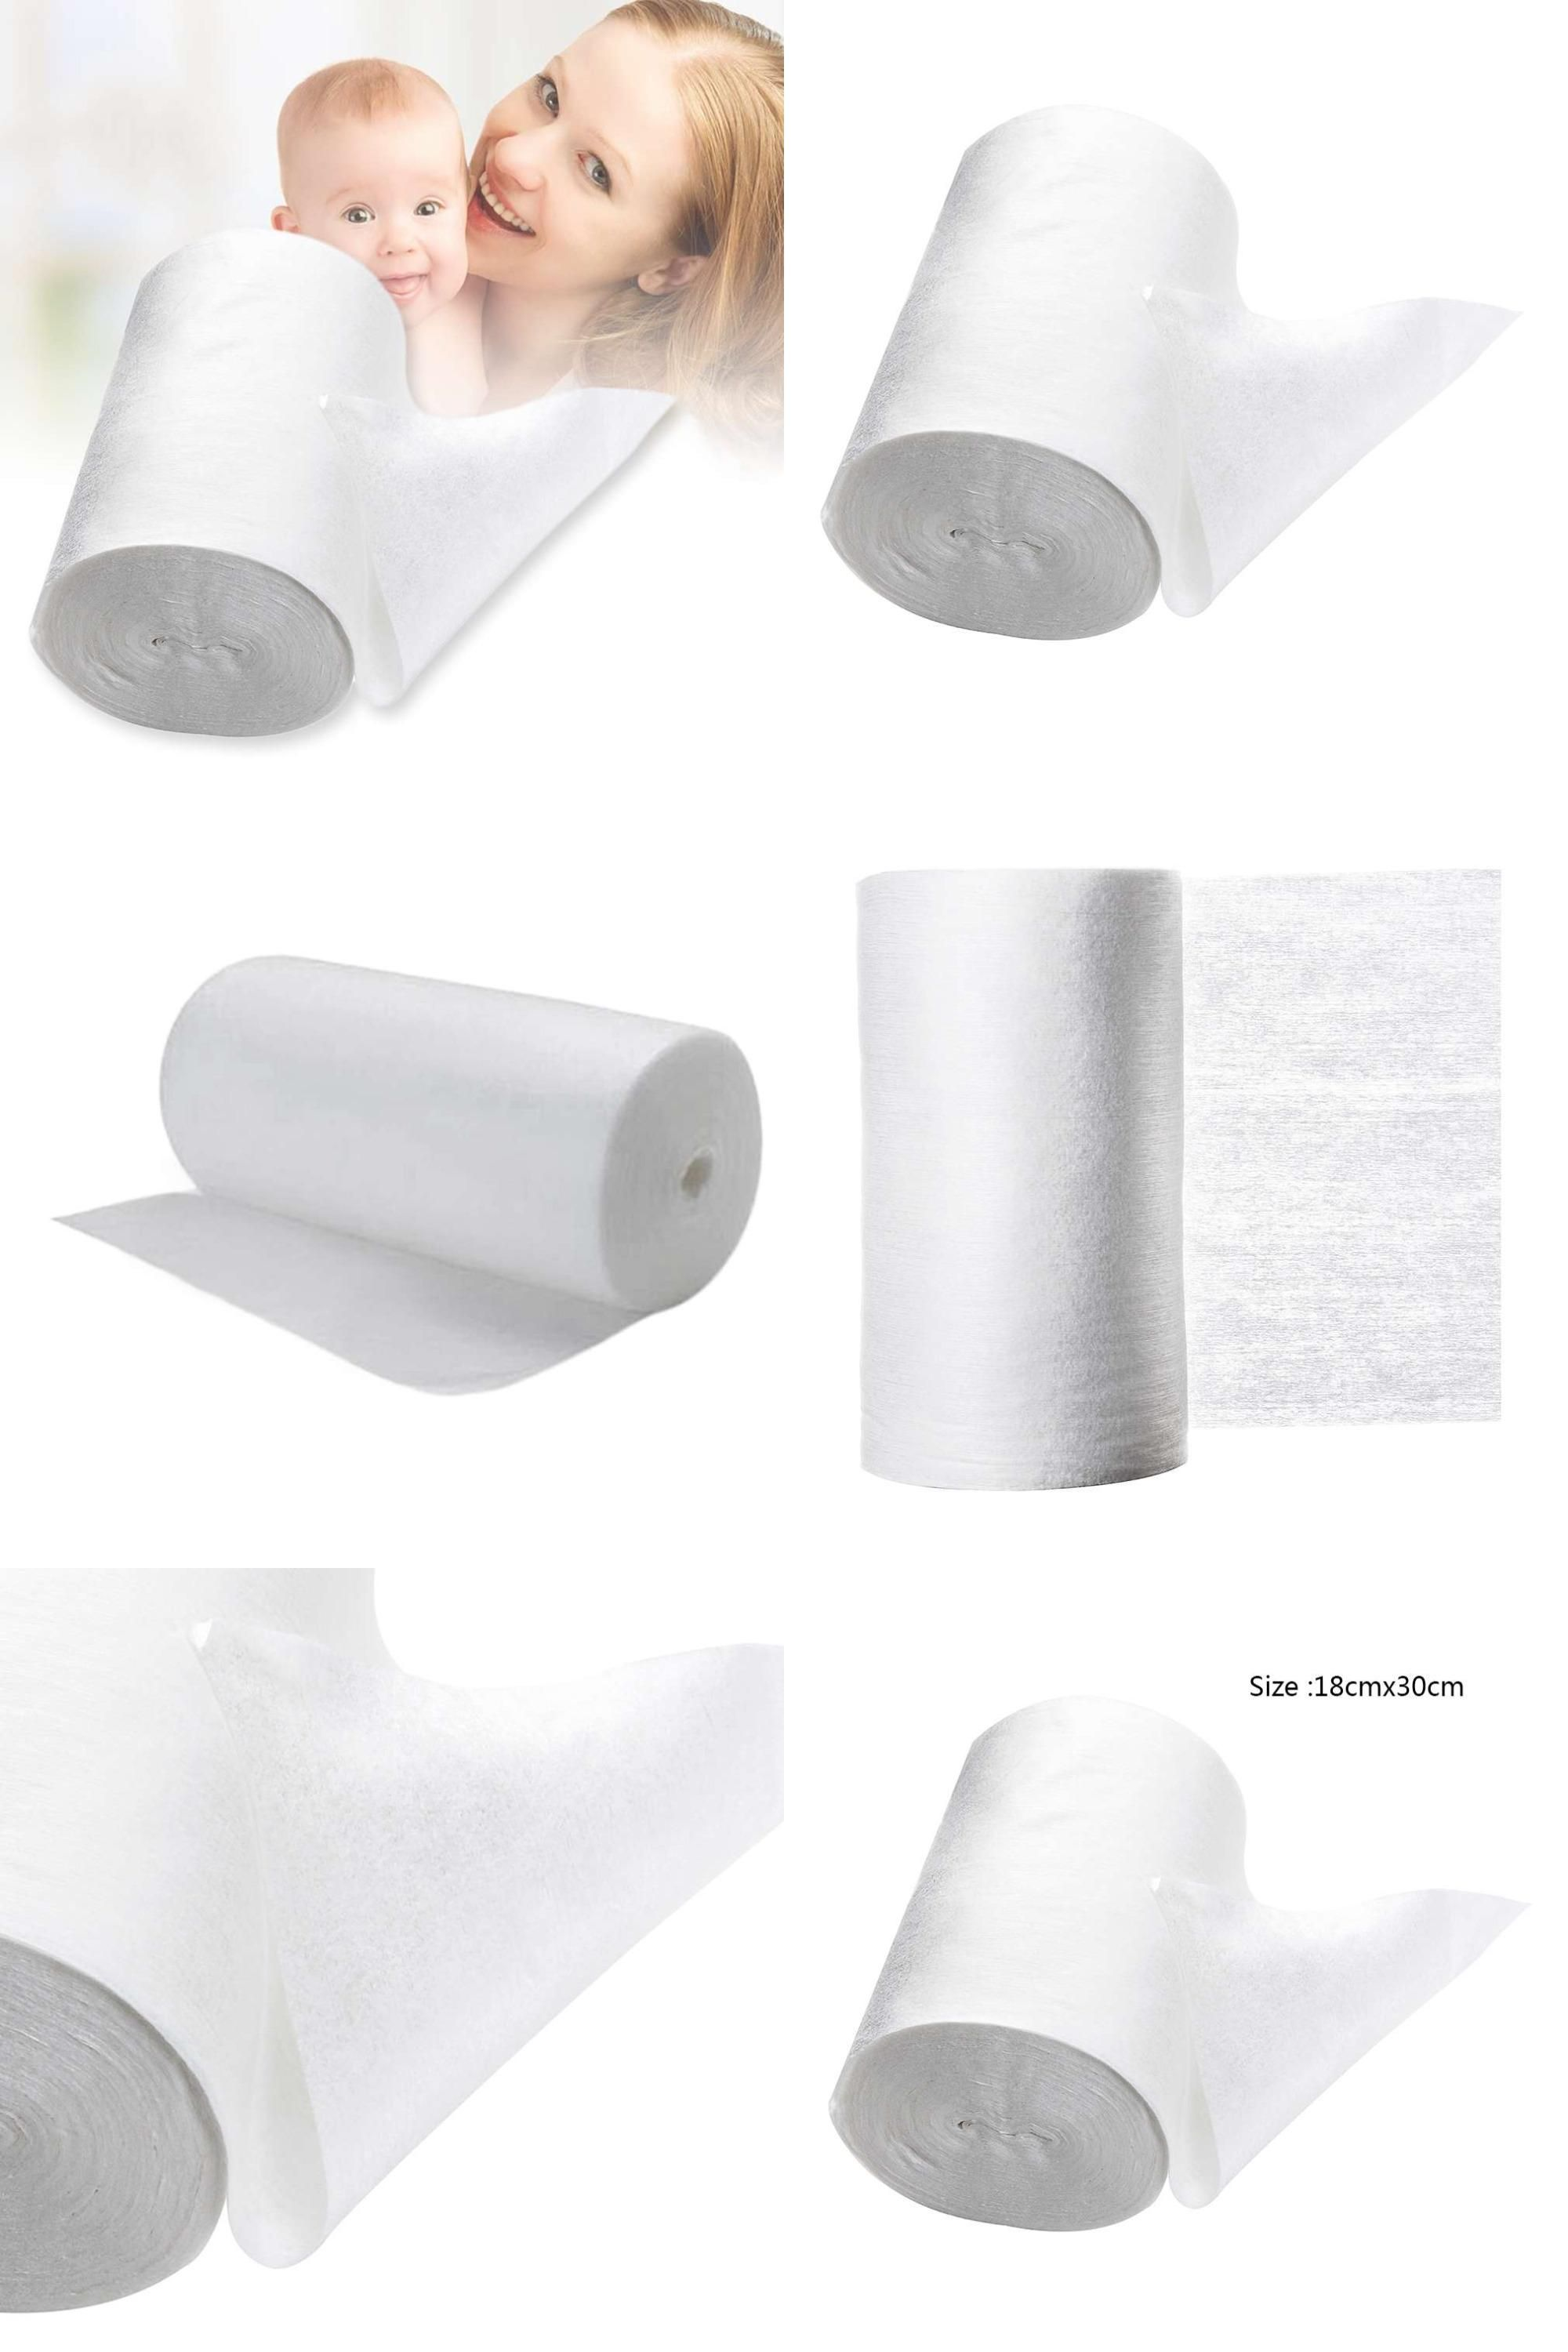 Baby Flushable Biodegradable Disposable Cloth Nappy Diaper Bamboo Liners 100 Sheets for 1 Roll 18cmx30cm Roll of Baby Flushable Biodegradable Disposable Cloth Na